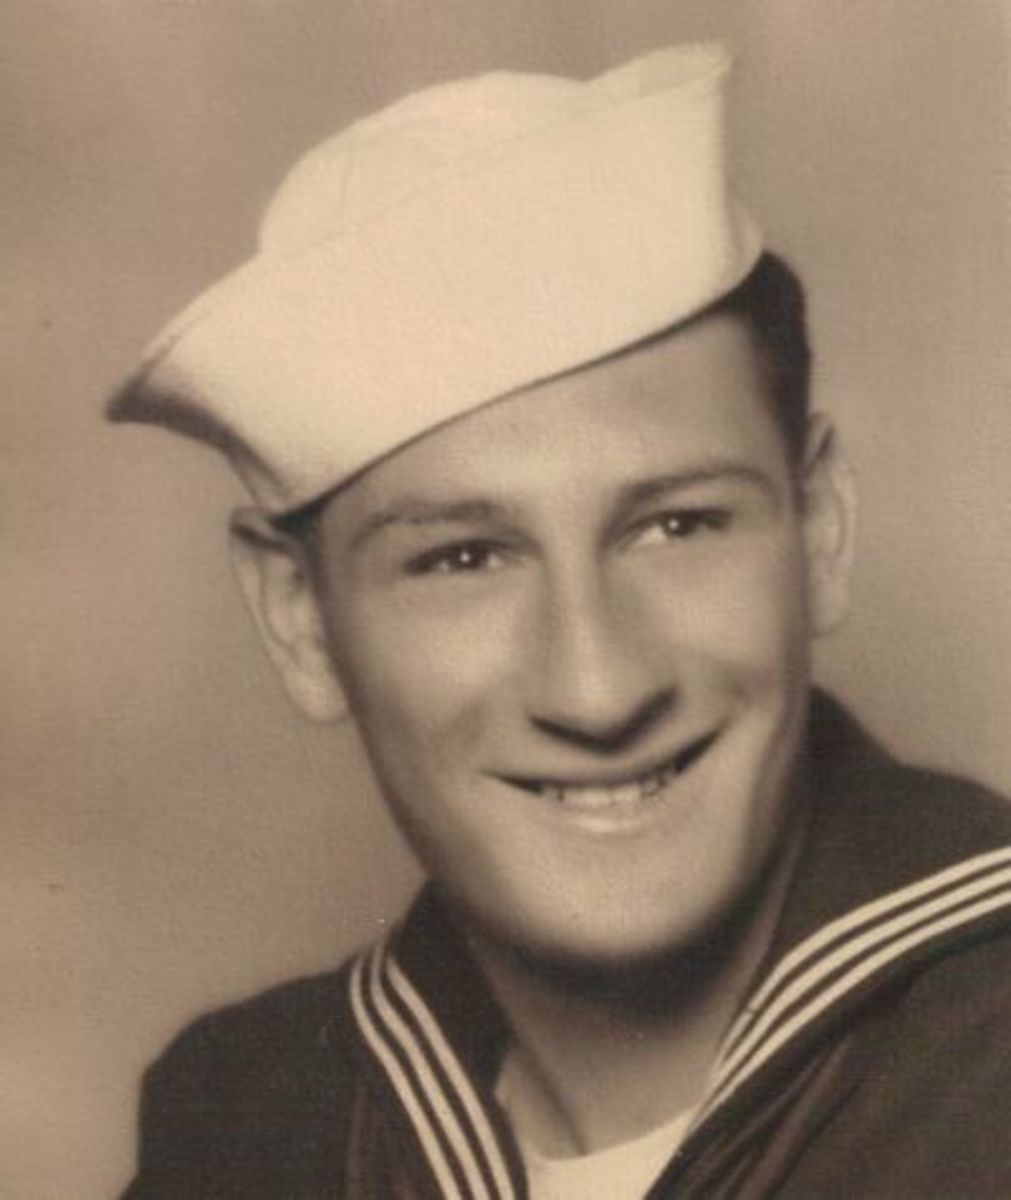 My dad, a U.S. Navy sailor